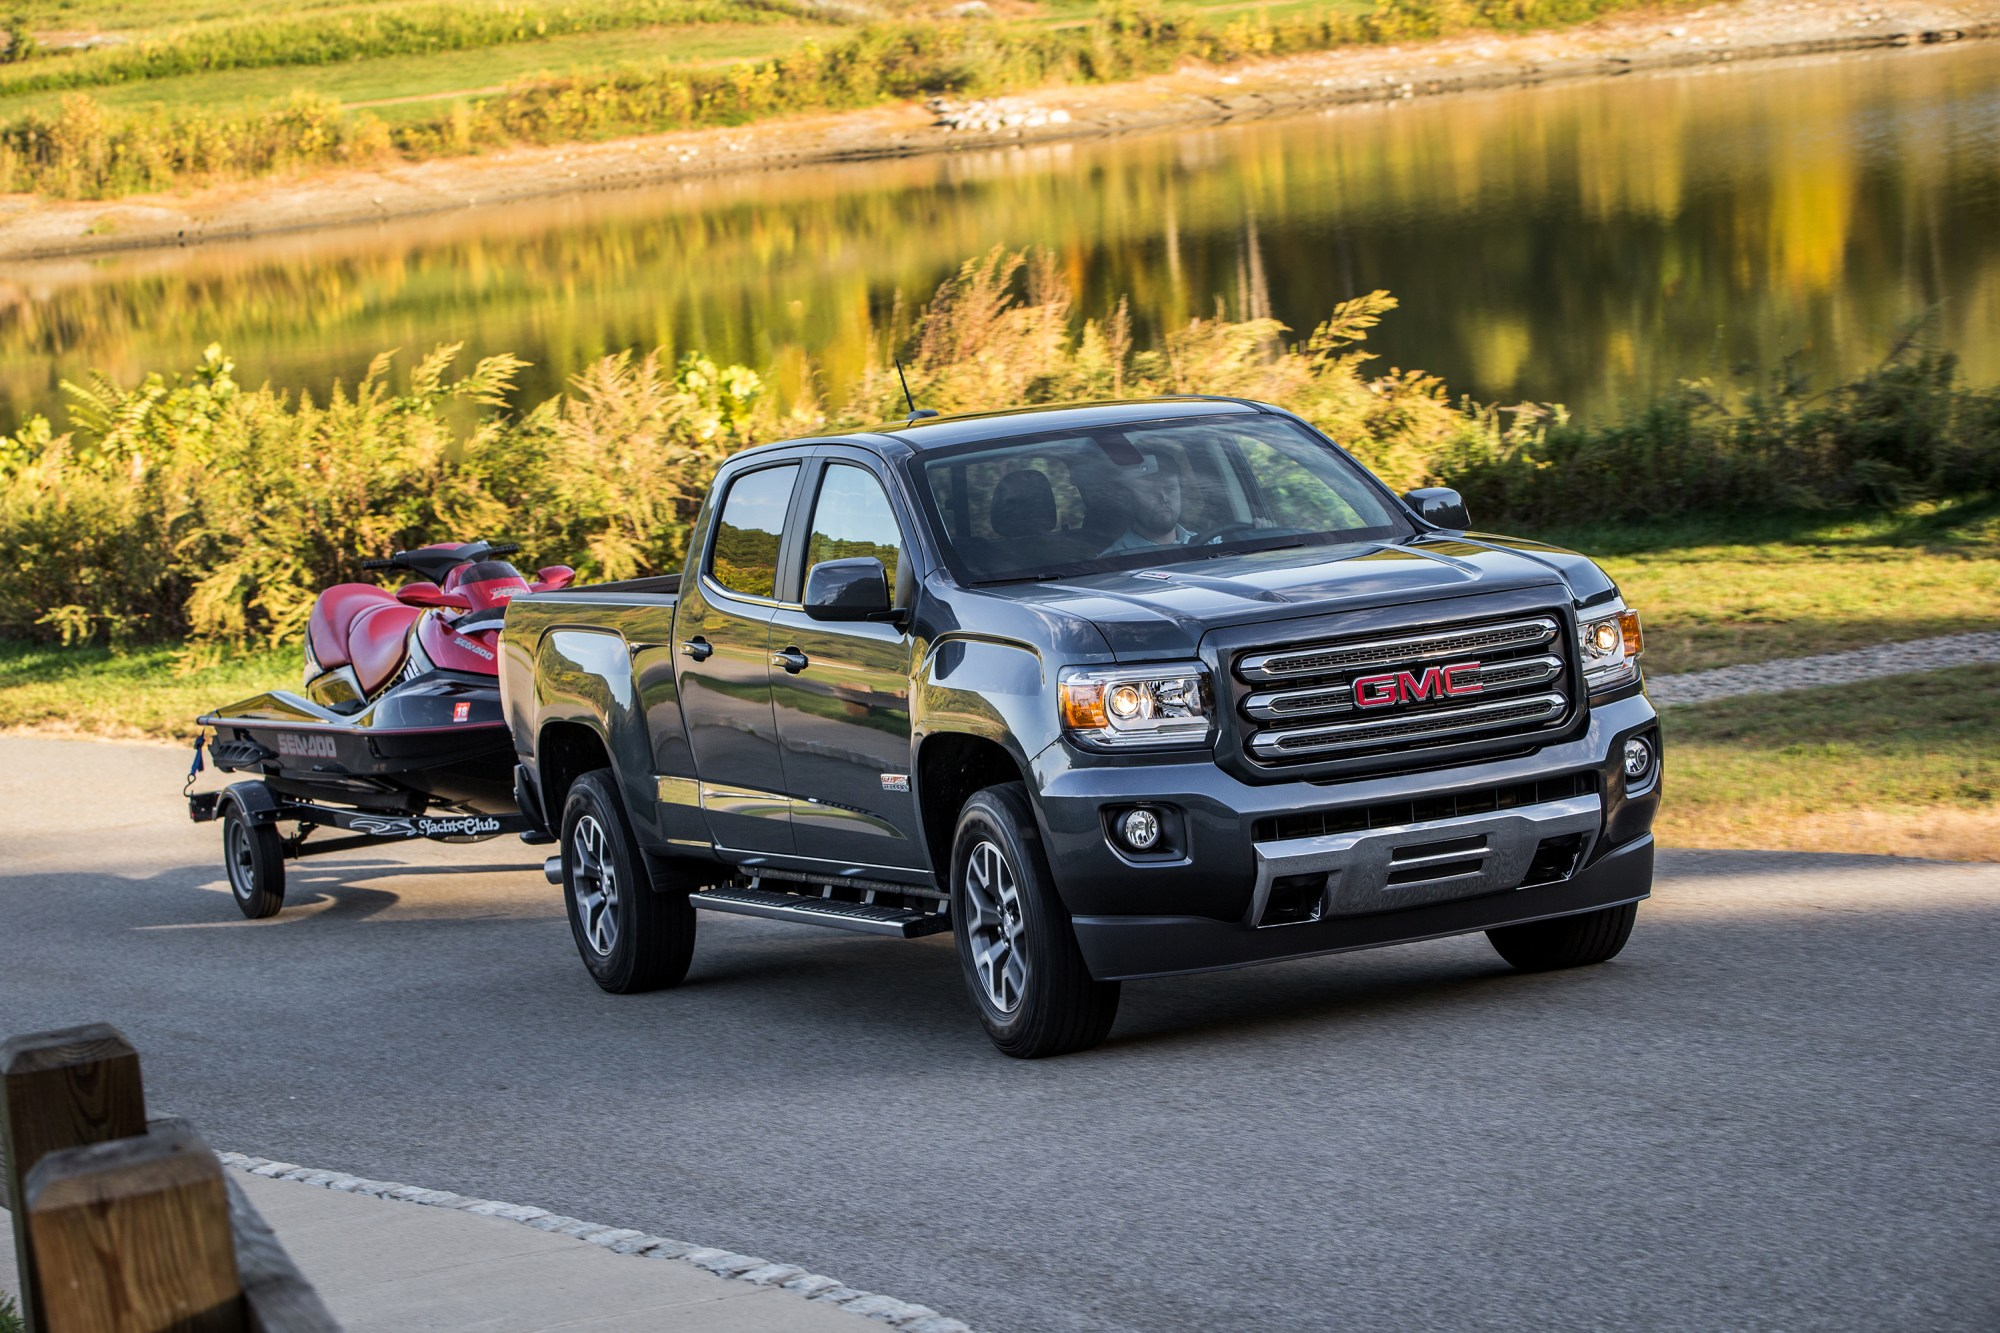 hight resolution of crew cab versatility offers seating for five along with a bed full of gear